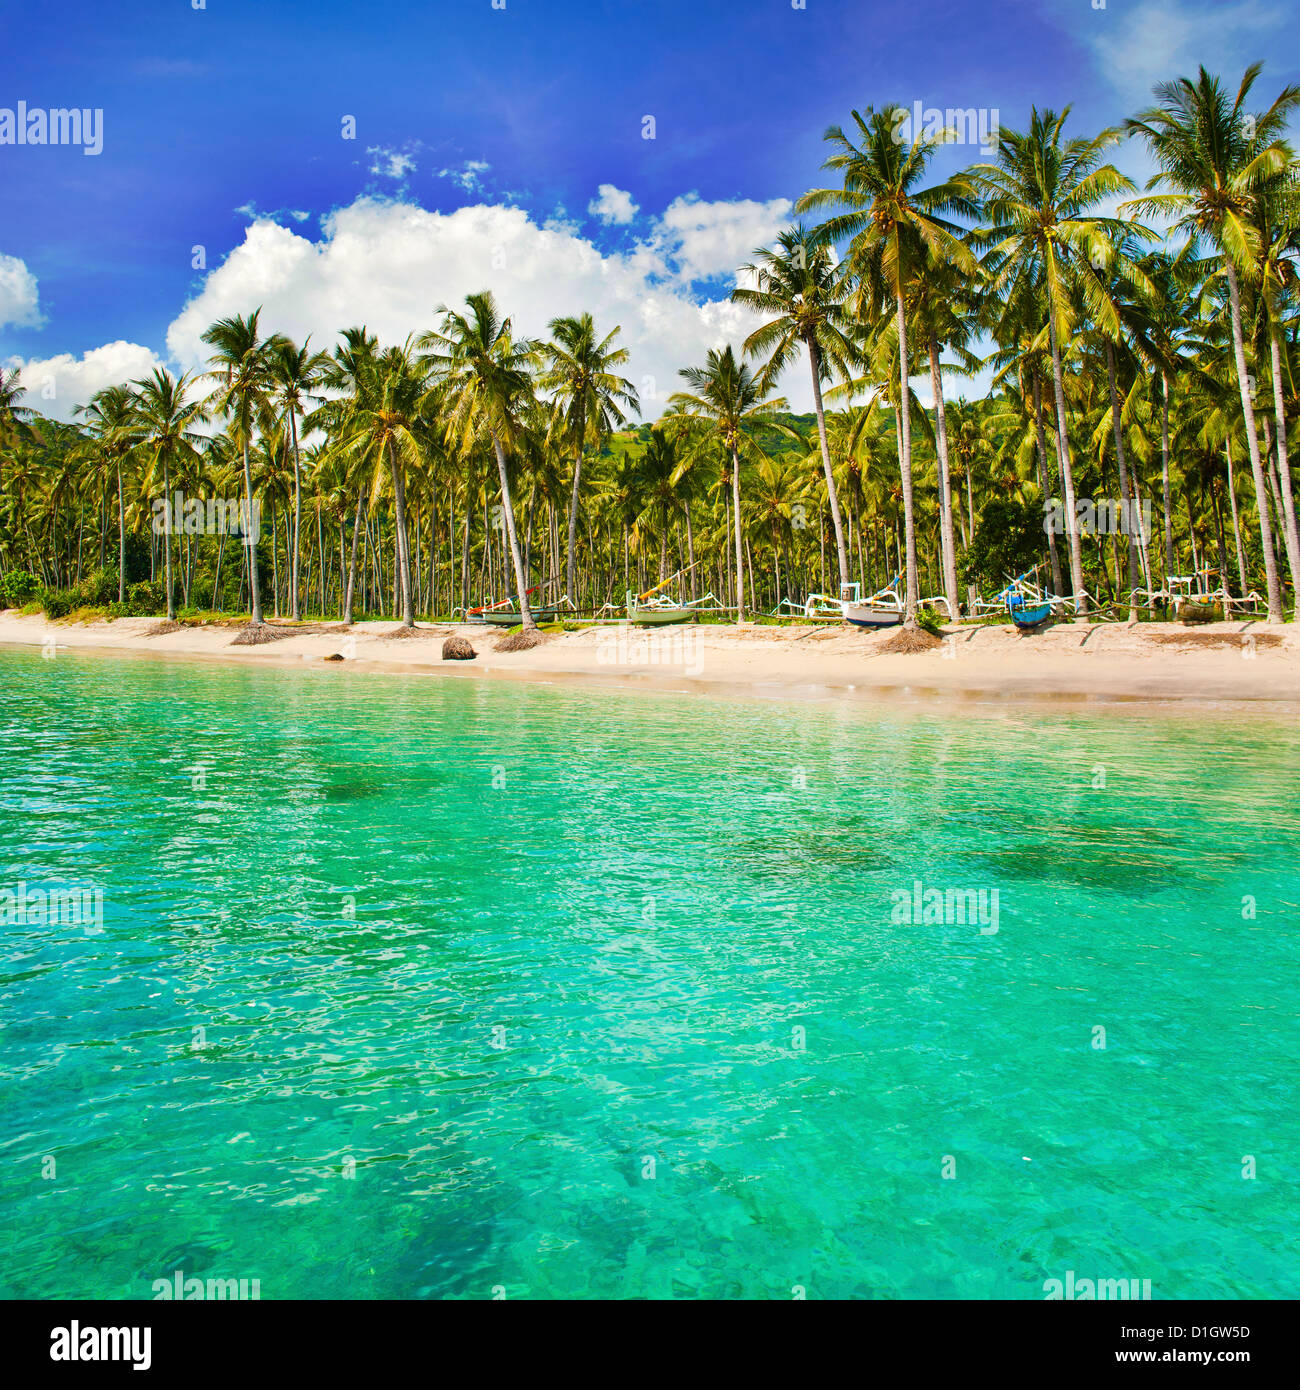 Turquoise water and palm trees lining Nippah Beach, Indonesia, Southeast Asia, Asia - Stock Image